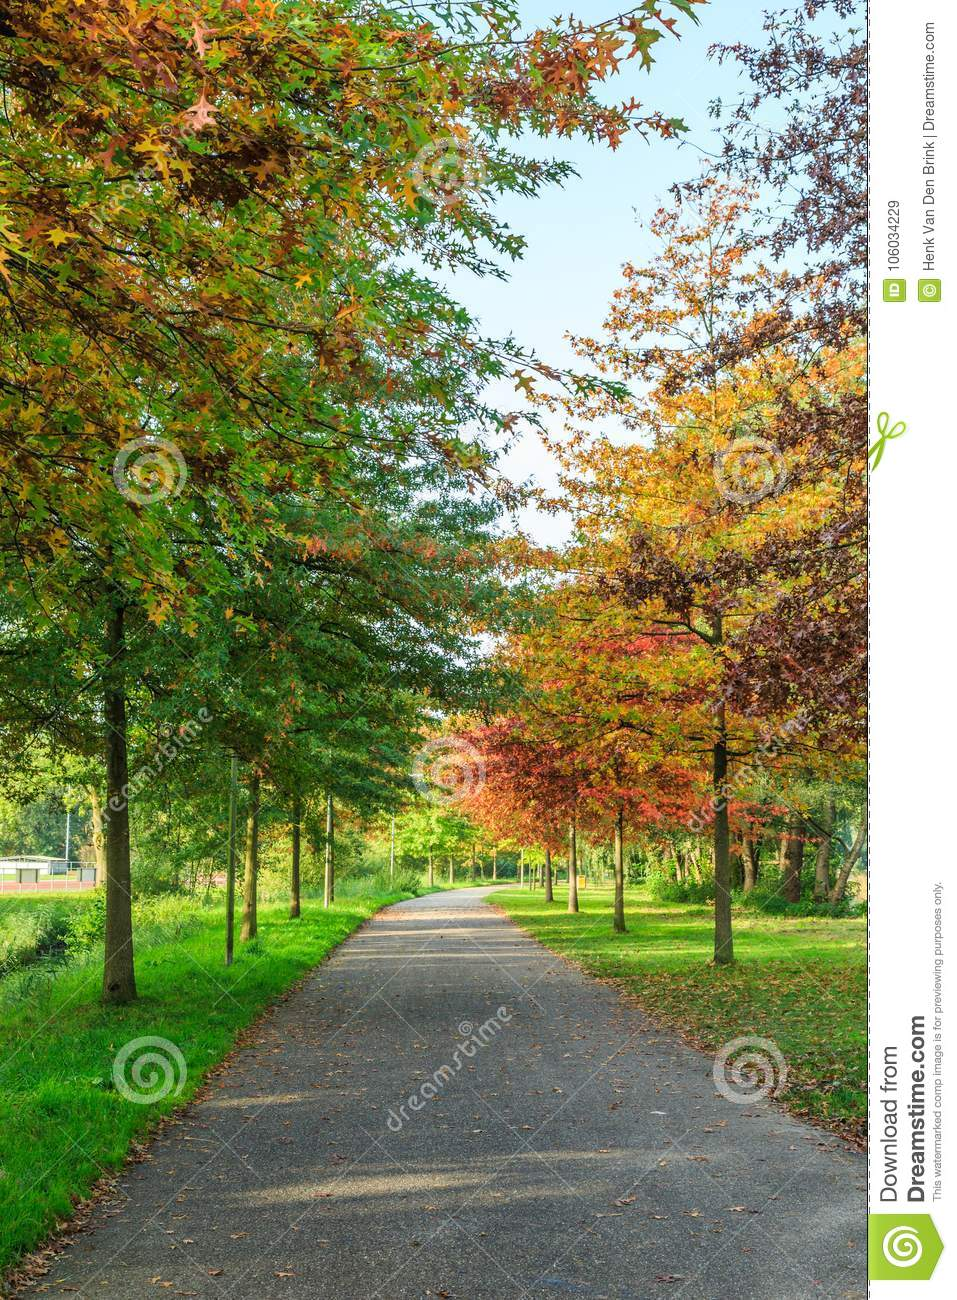 Pin Oak, Quercus Palustris As A Street Tree Planted In The Roadside ...